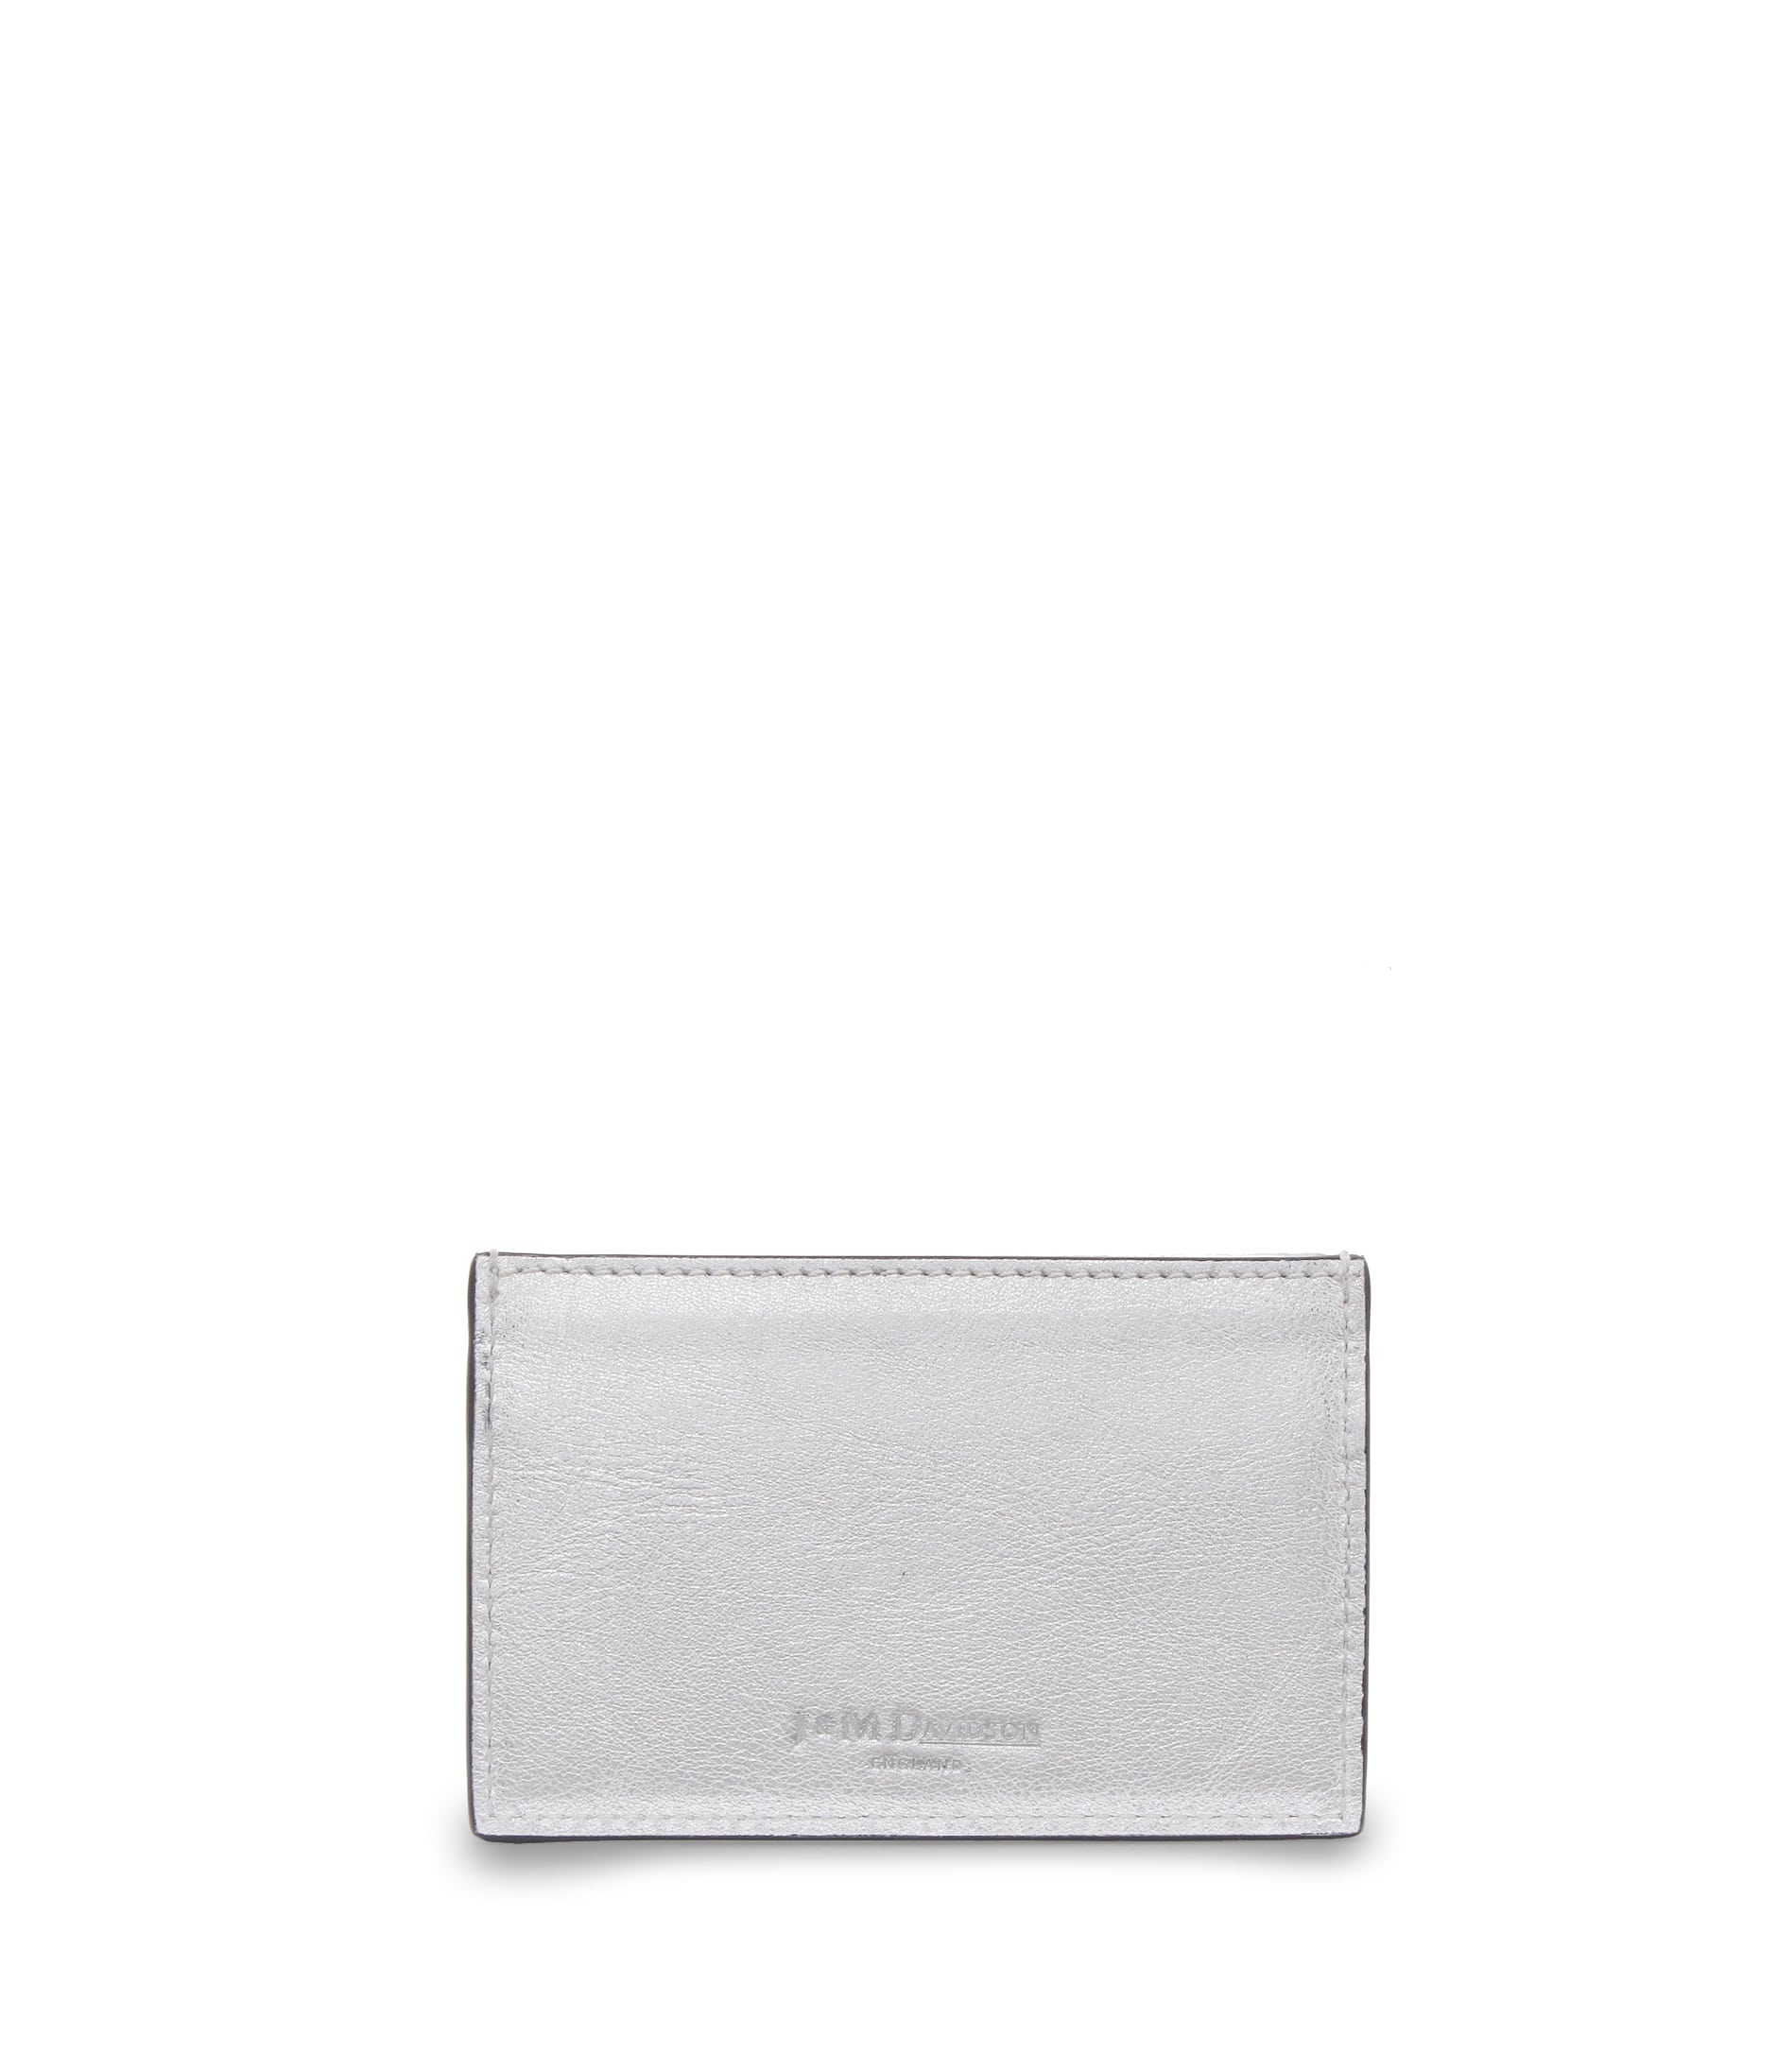 FLAT CREDIT CARD CASE WITH STUDS 詳細画像 SILVER 2